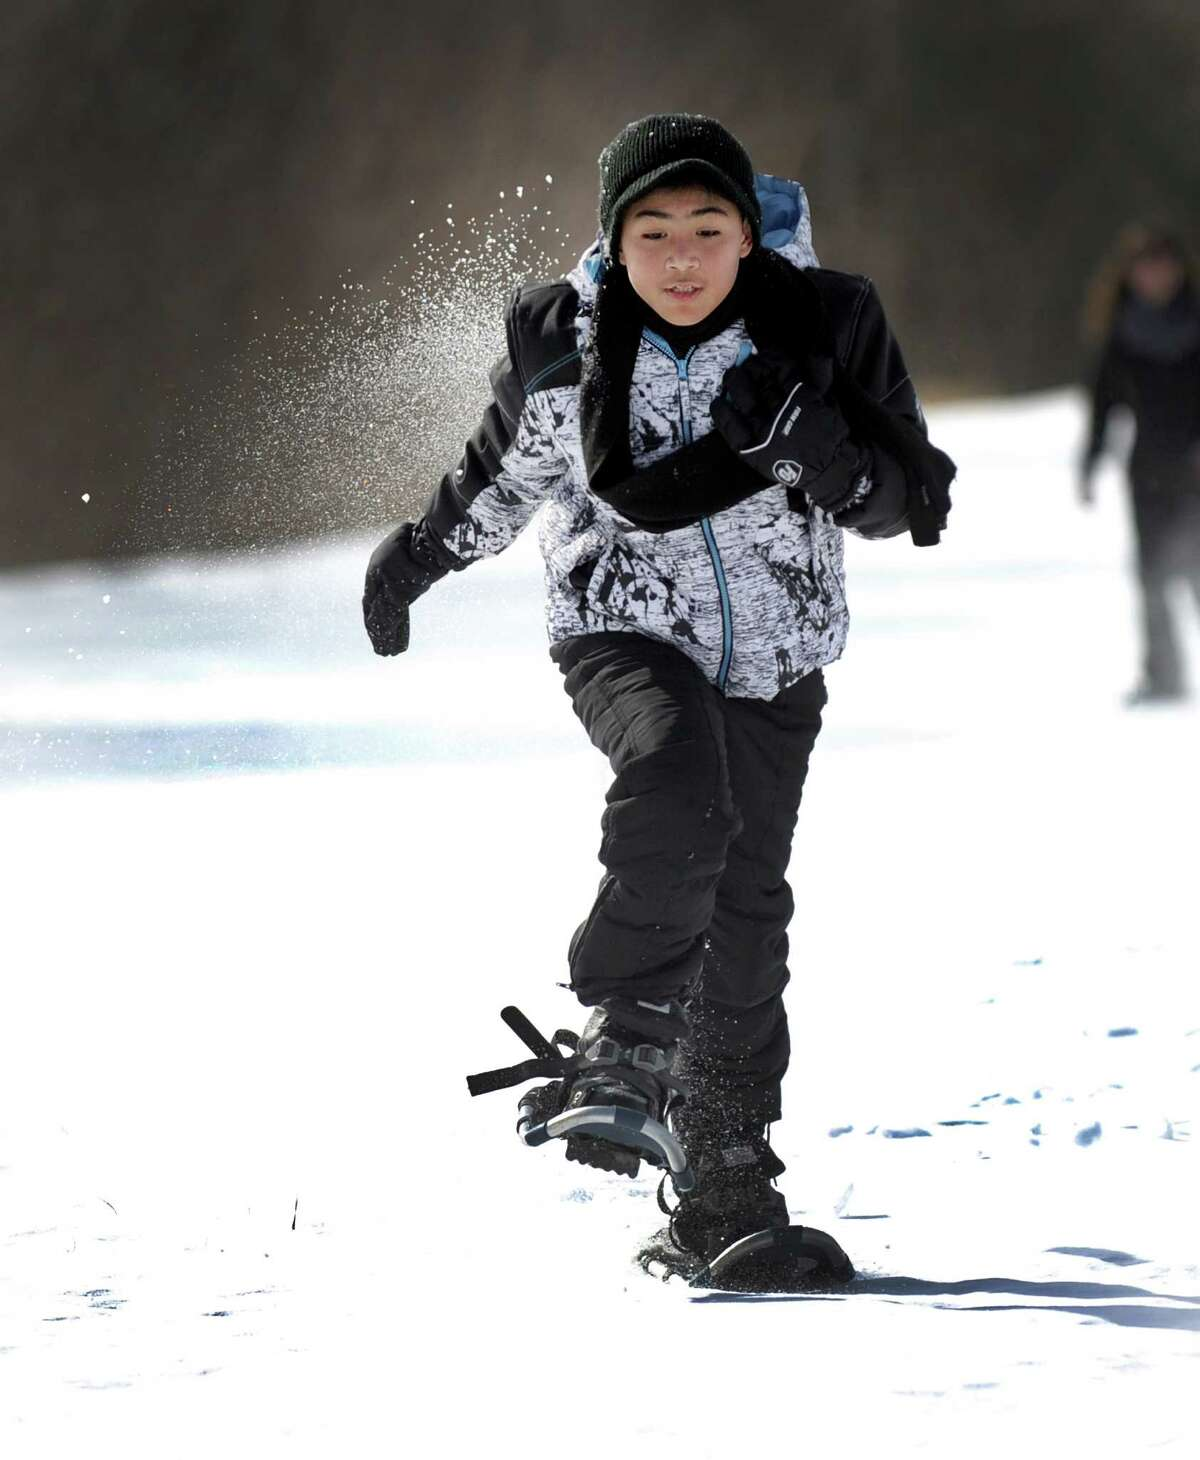 Julian Roman, a fifth-grader at Sarah Noble Intermediate School snowshoes on the fields of the school Friday, Feb. 12, 2016, with his class.The Pratt Nature Center is holding Snowshoe Project 2016. This is the second year the center is holding the event and plans to take all New Milford third, fourth and fifth-grade students snowshoeing starting on Friday, Feb. 12, 2016, at Scotts Ridge Intermediate School. The event aims to promote living a healthy and active lifestyle.